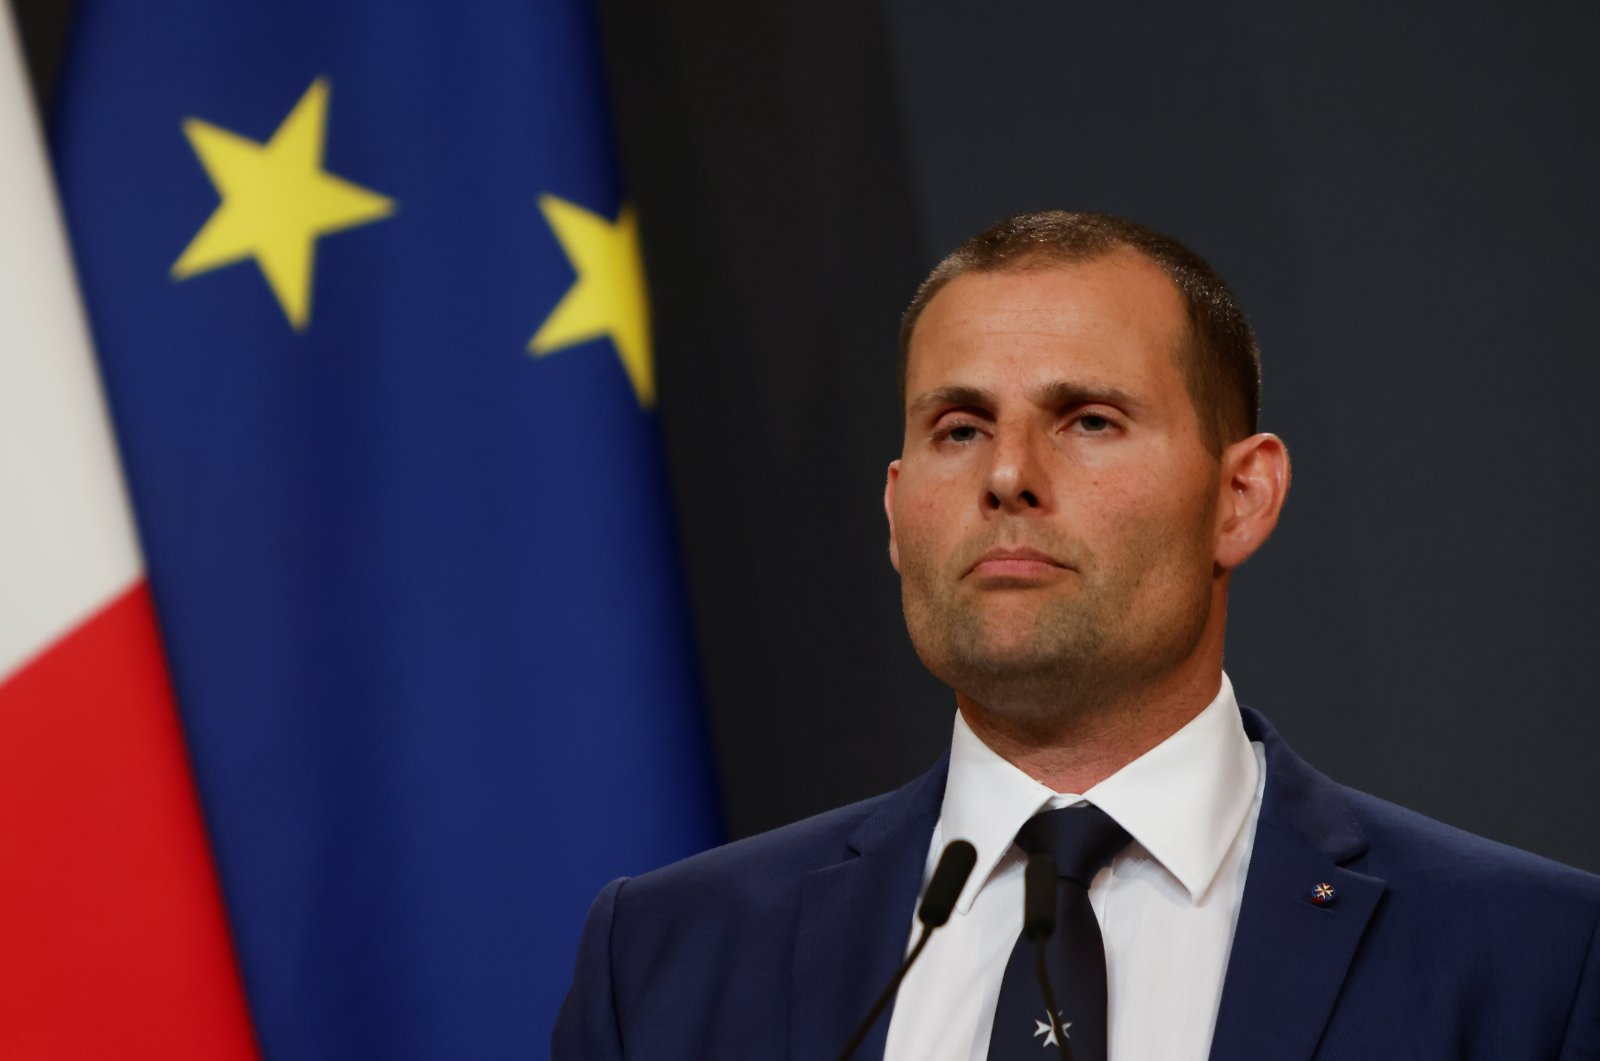 Malta's Prime Minister Robert Abela holds a news conference after local media reported that Malta has been grey-listed by the global anti-money laundering watchdog, the Financial Action Task Force (FATF), in Valletta, Malta, June 23, 2021. (Reuters Photo)